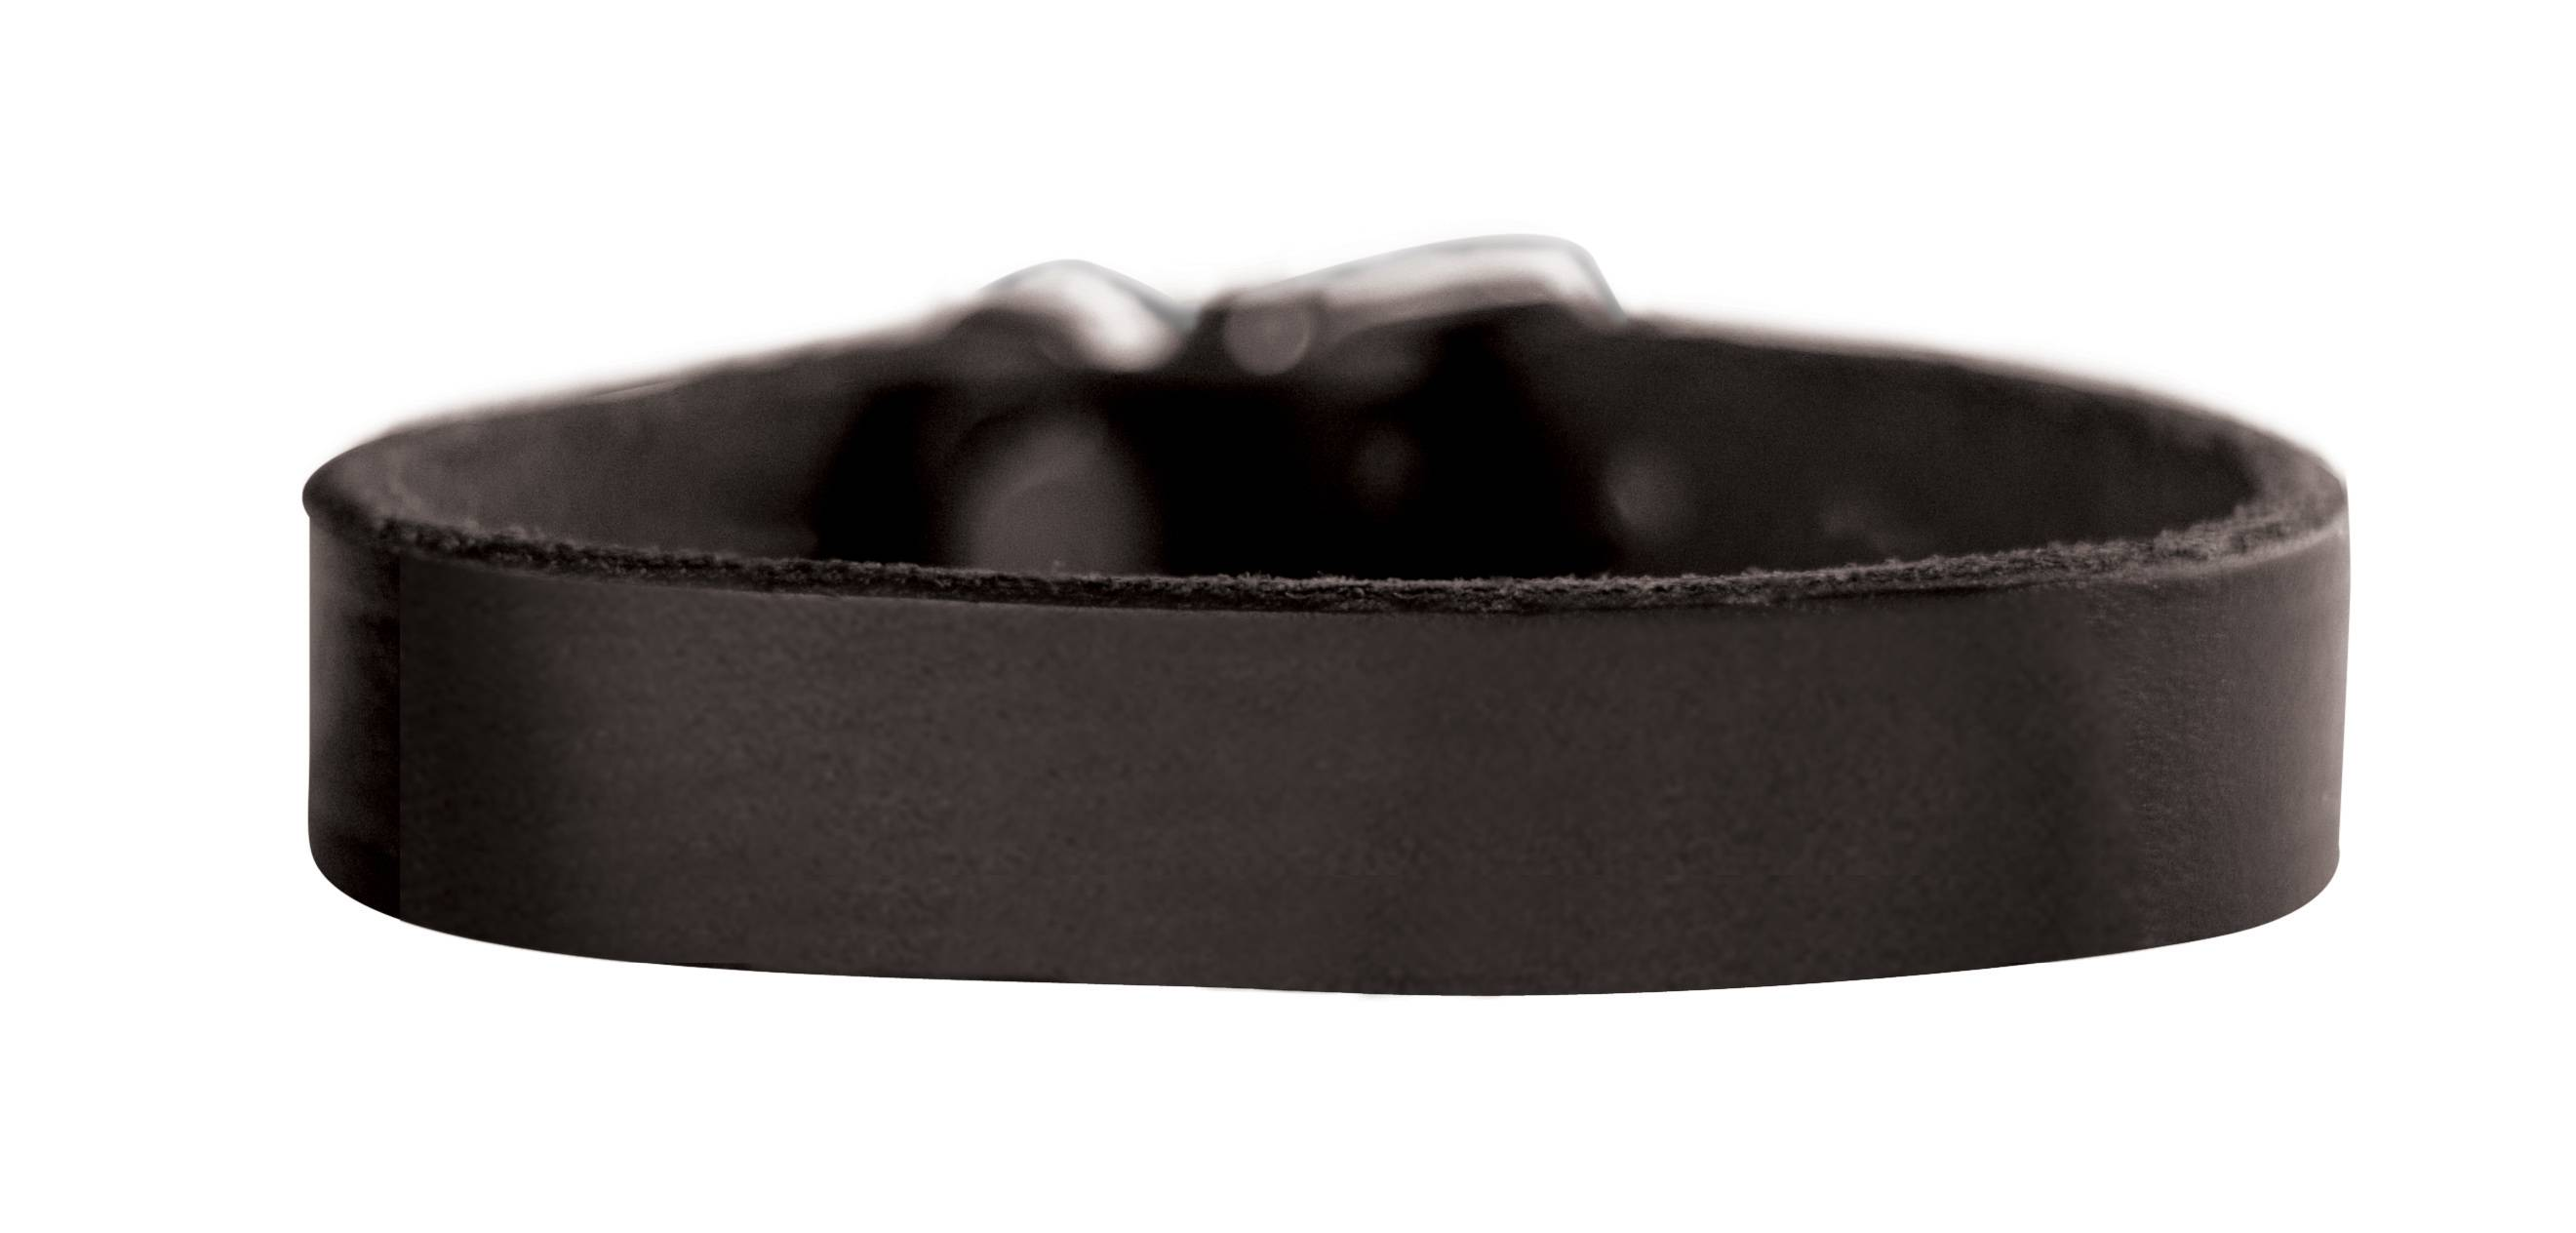 Perri's Leather Bracelet